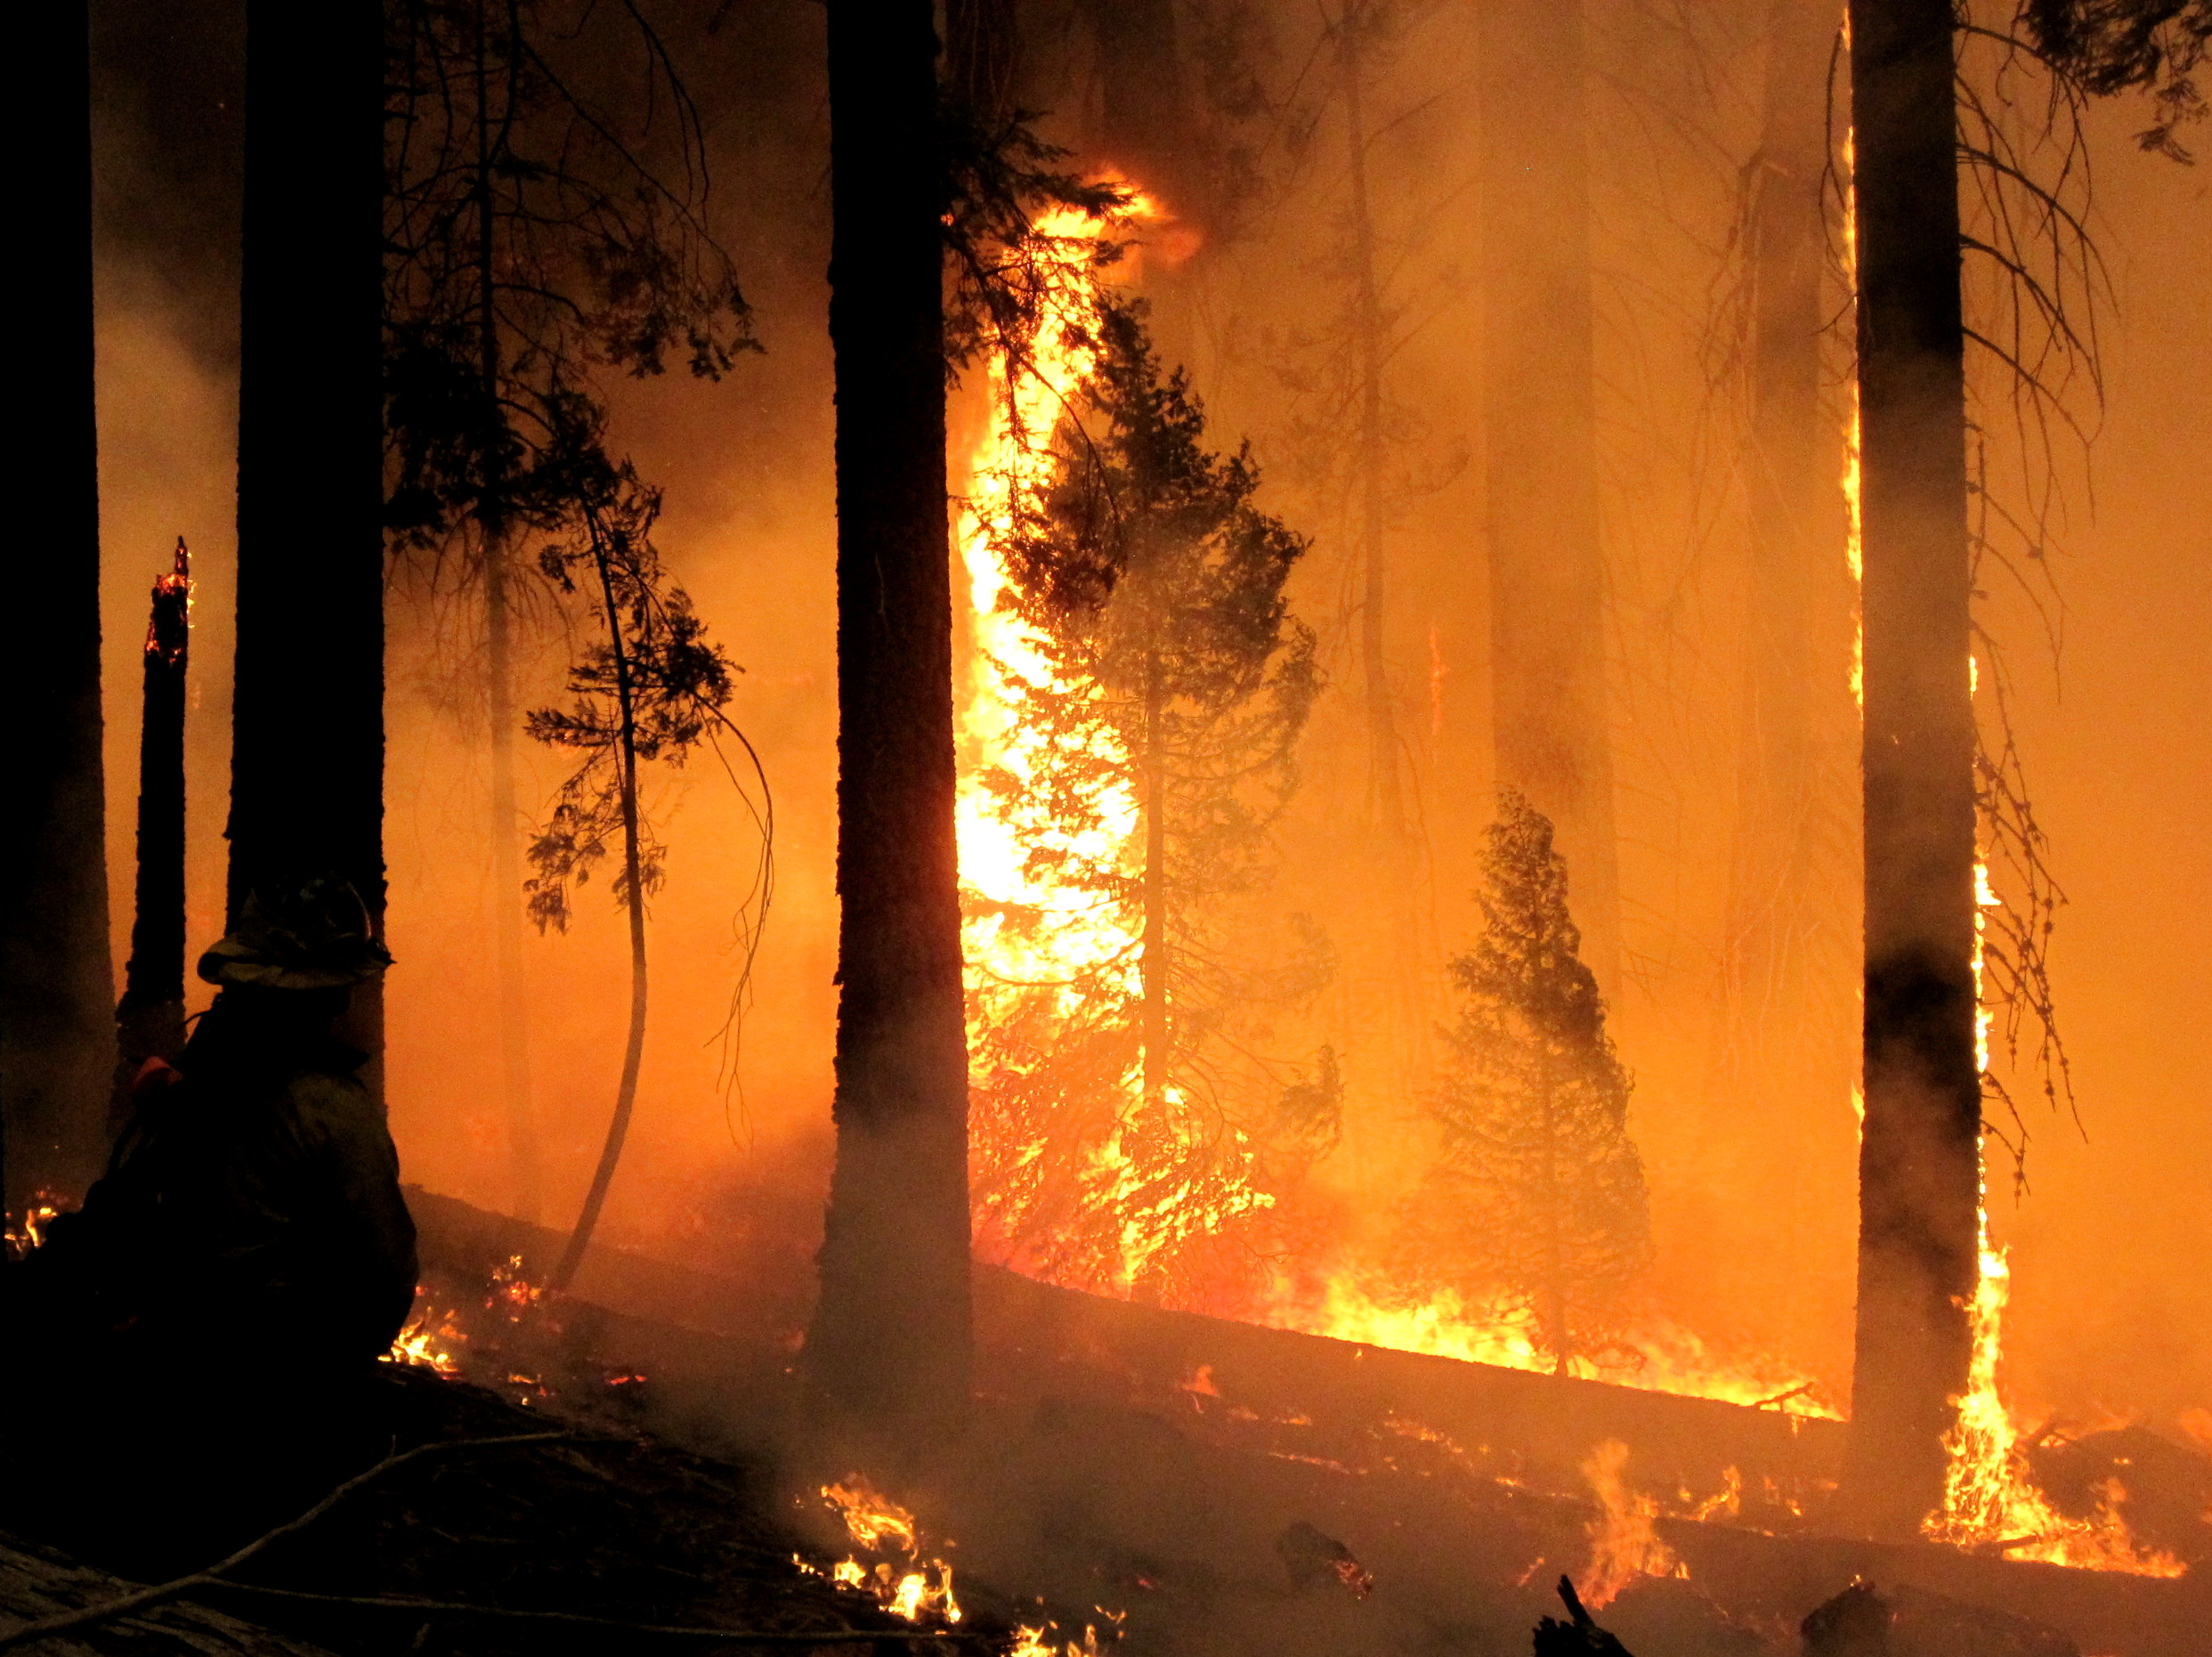 New research shows that forest thinning from wildfires may be a saving grace for California as evapotranspiration has decreased over the years, saving billions of gallons of water.